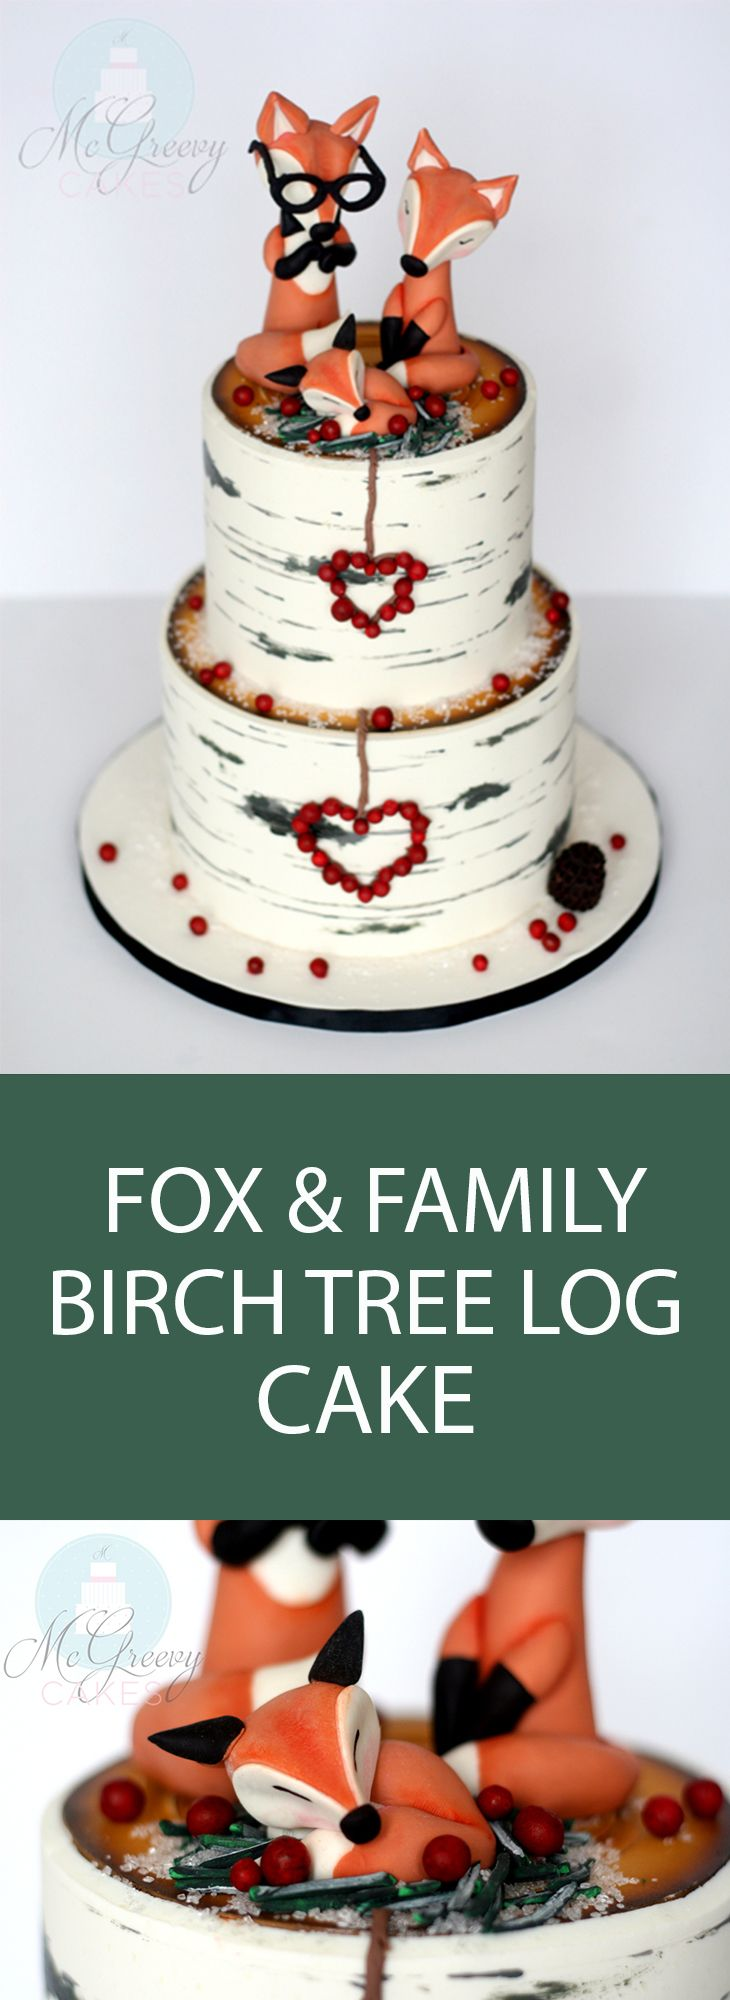 Fox & Family birch tree log cake. A special cake for a special baby!